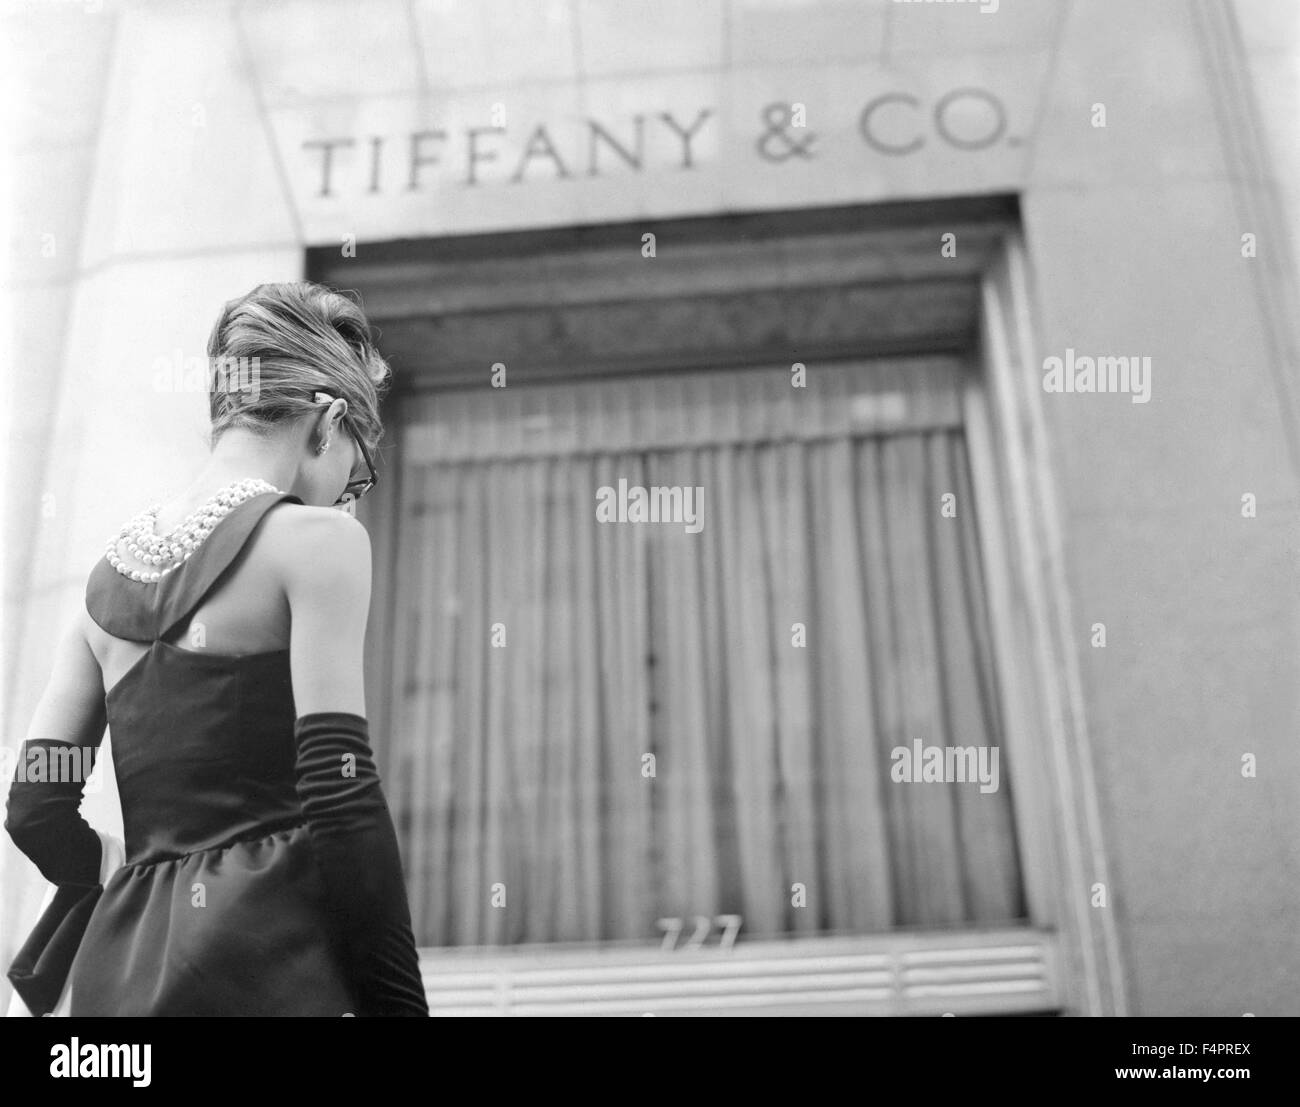 Audrey Hepburn / Breakfast at Tiffany's / 1961 directed by Blake Edwards  [Paramount Pictures] - Stock Image